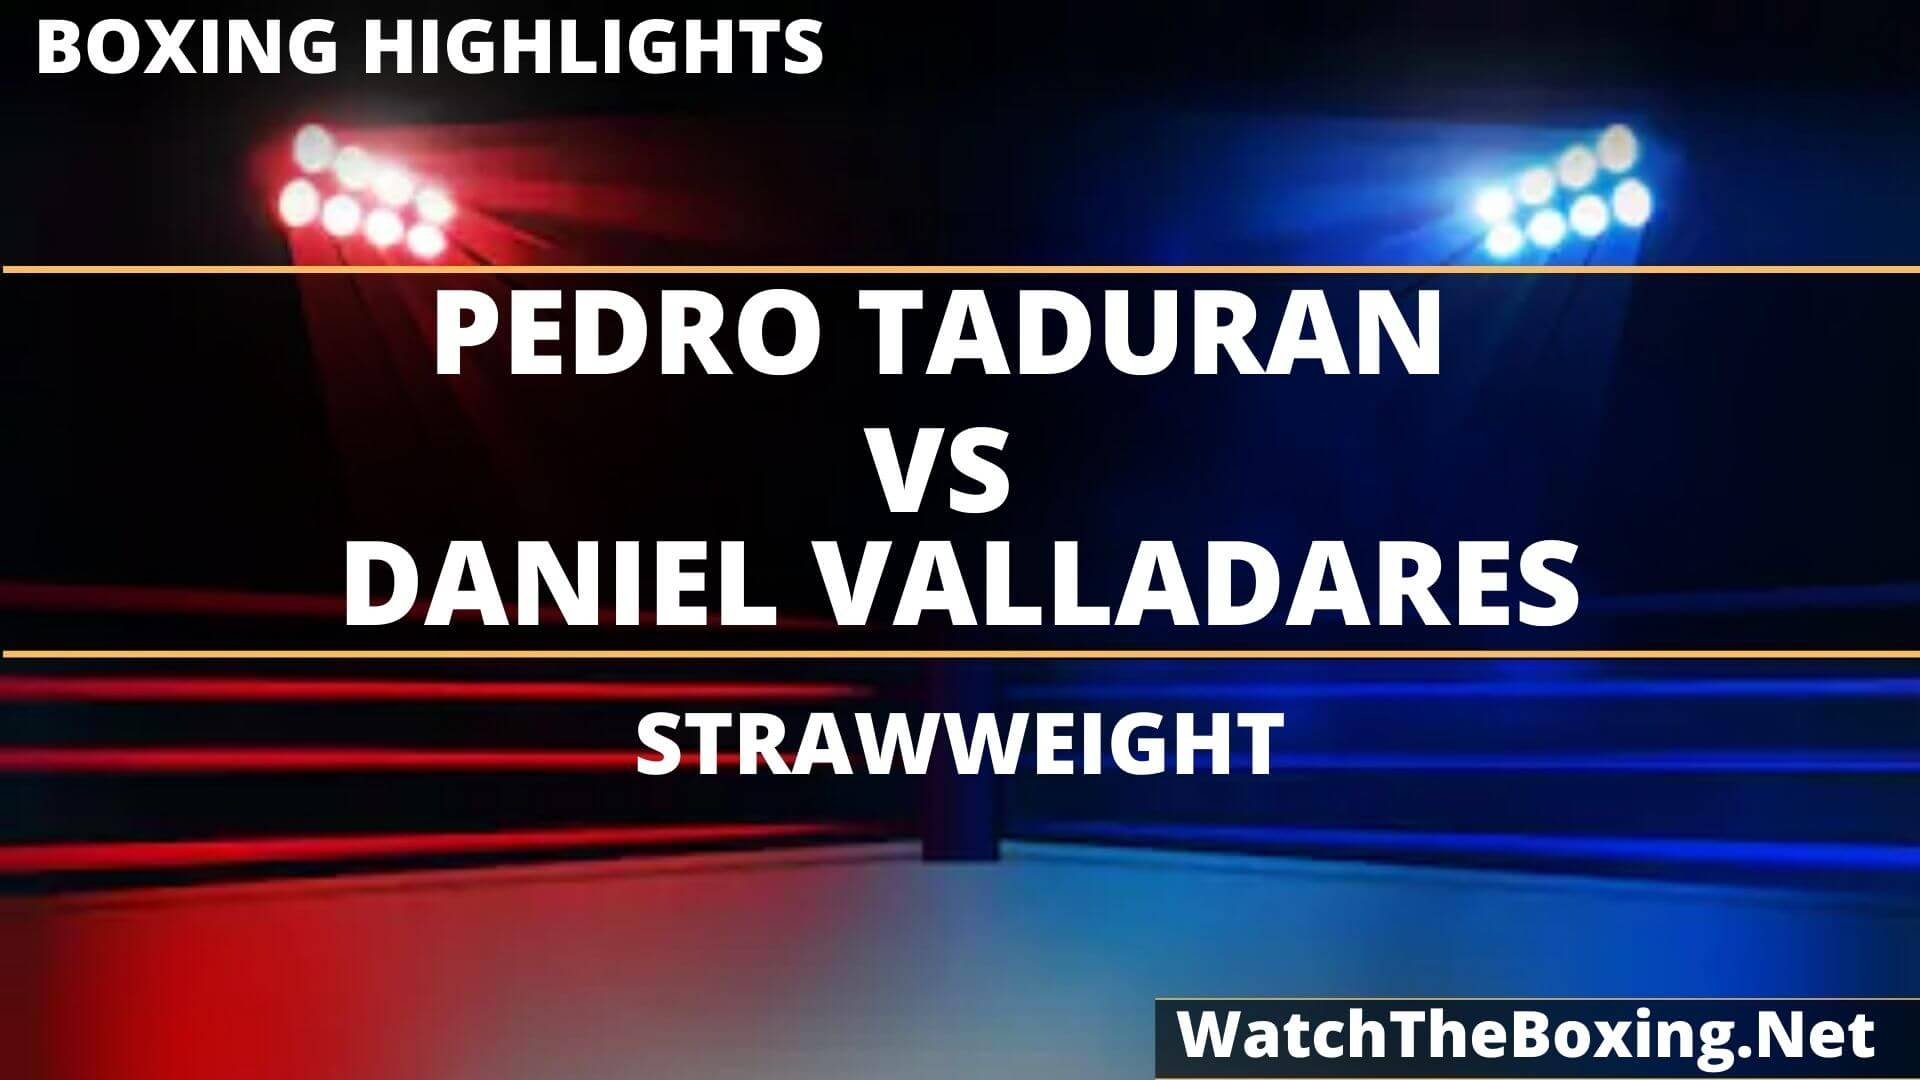 Pedro Taduran Vs Daniel Valladares Highlights 2020